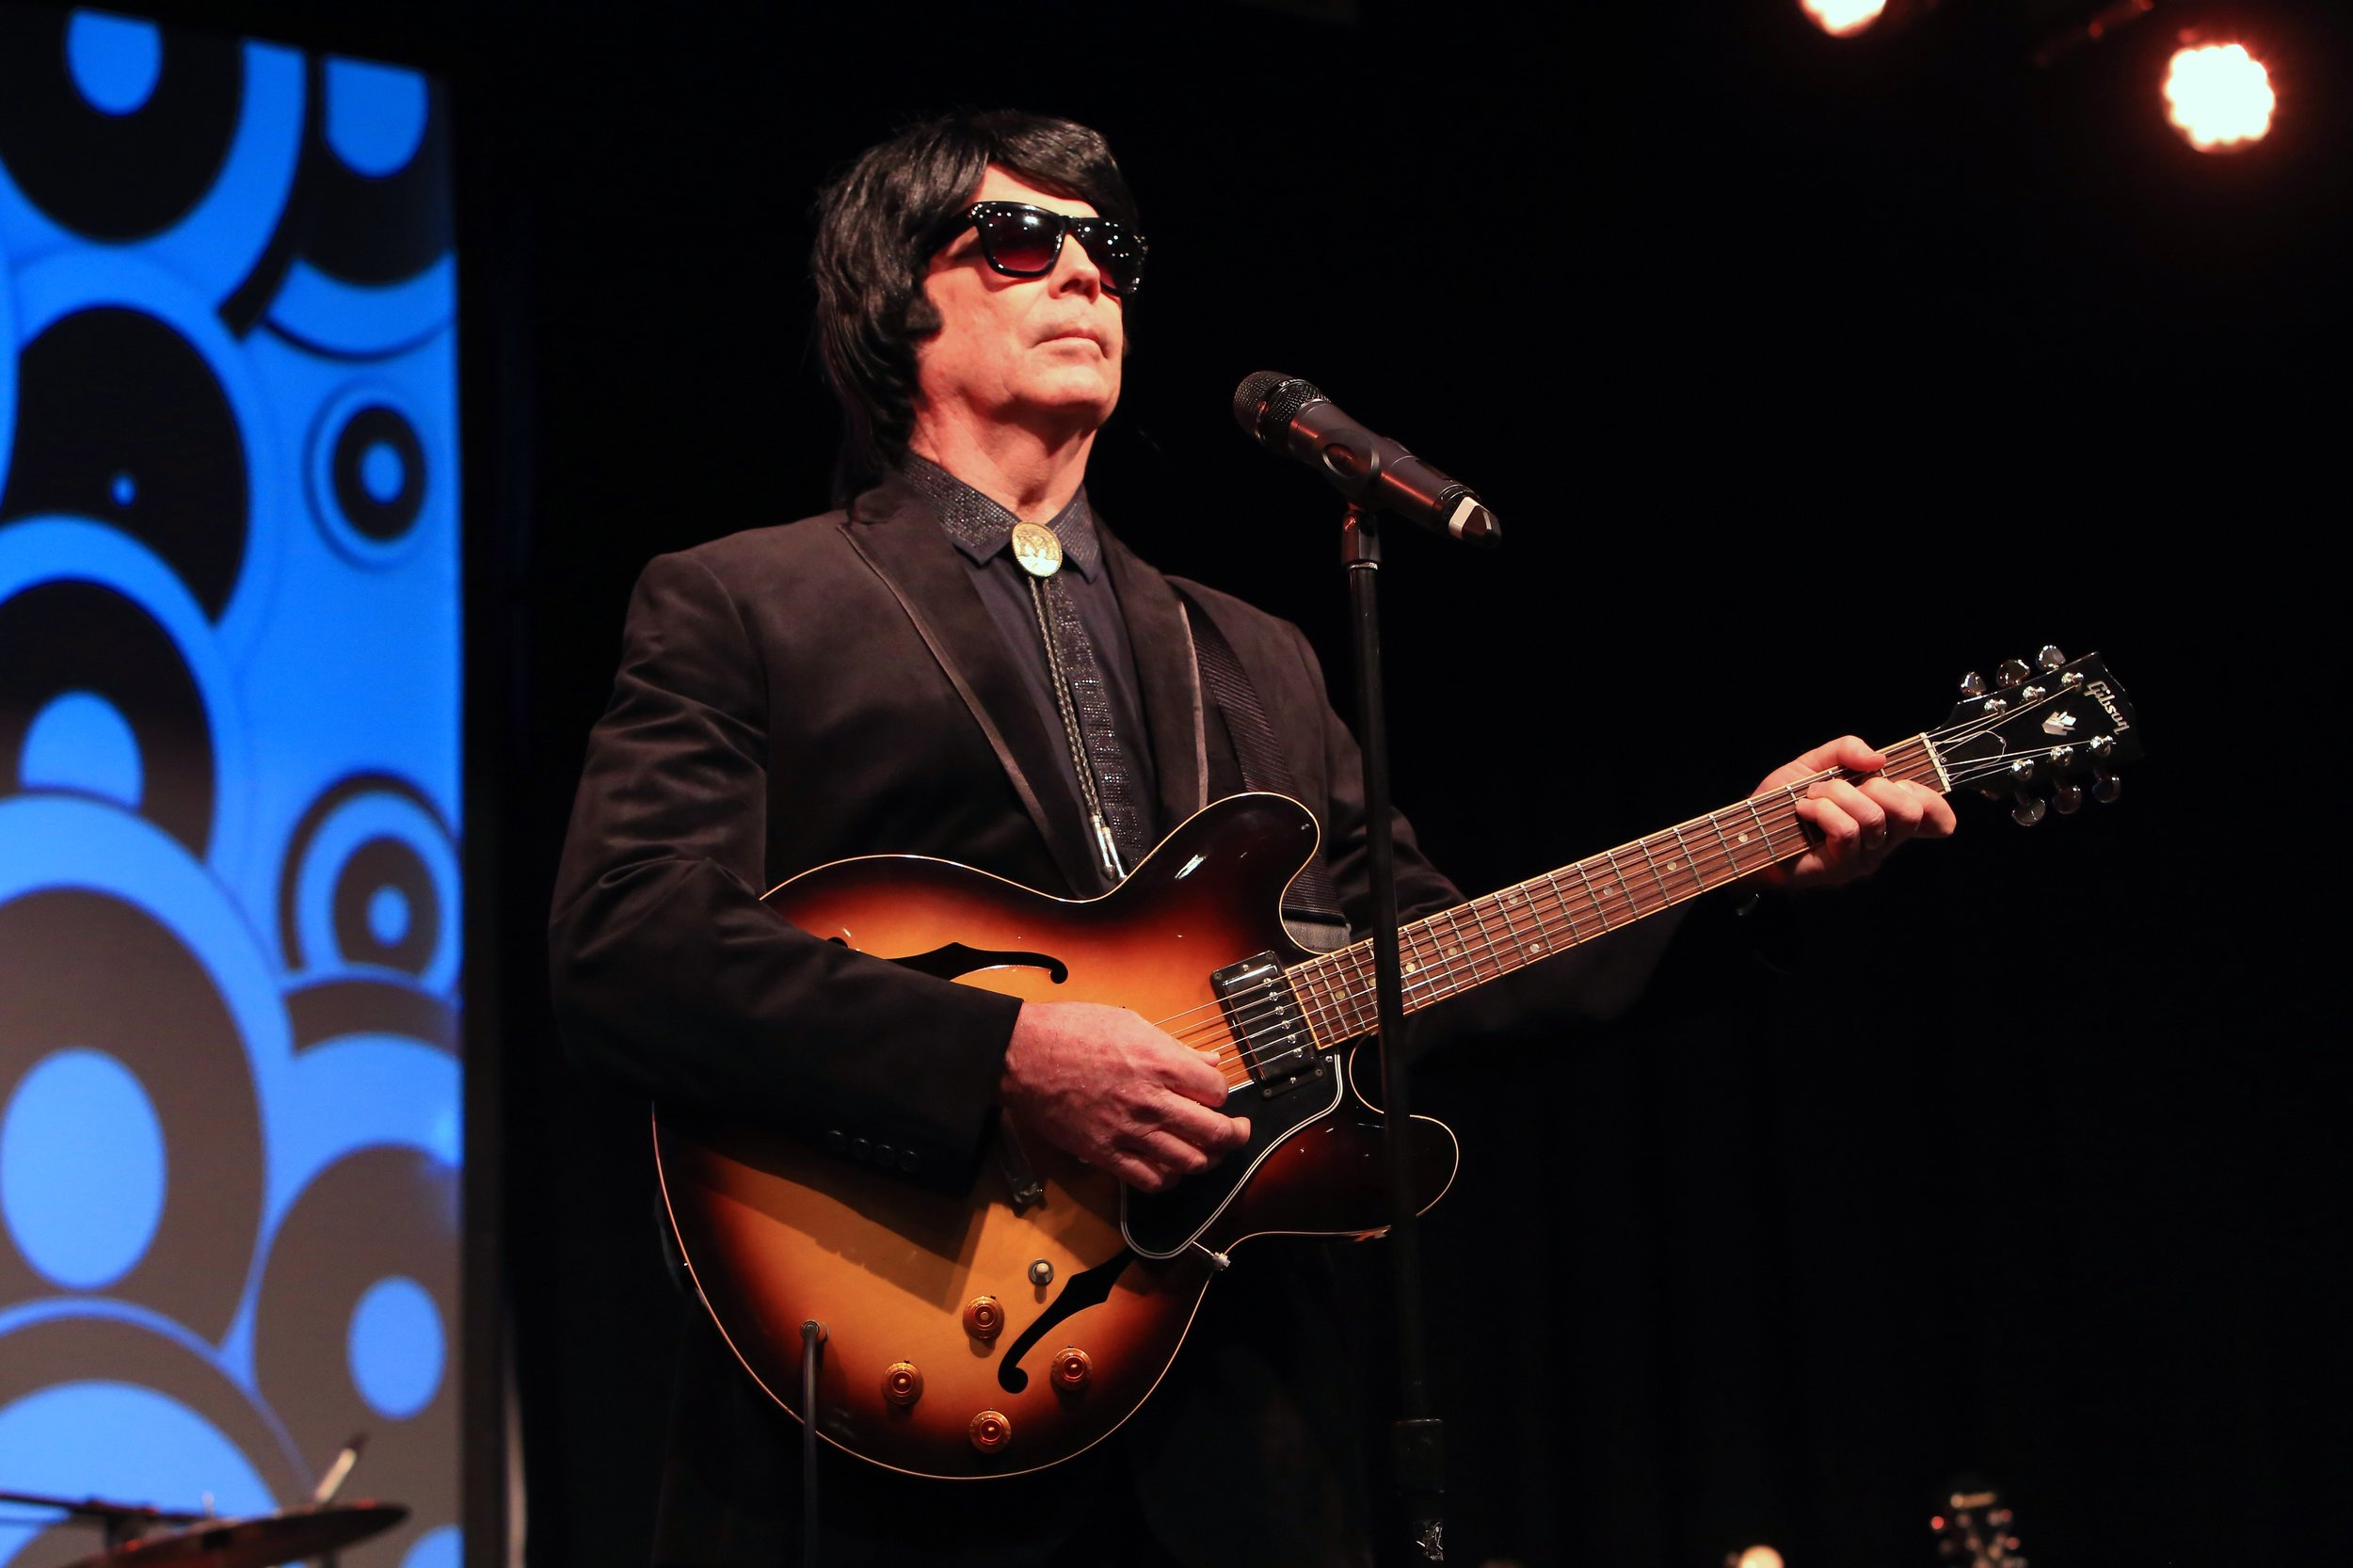 Tim Mahoney as Roy Orbison